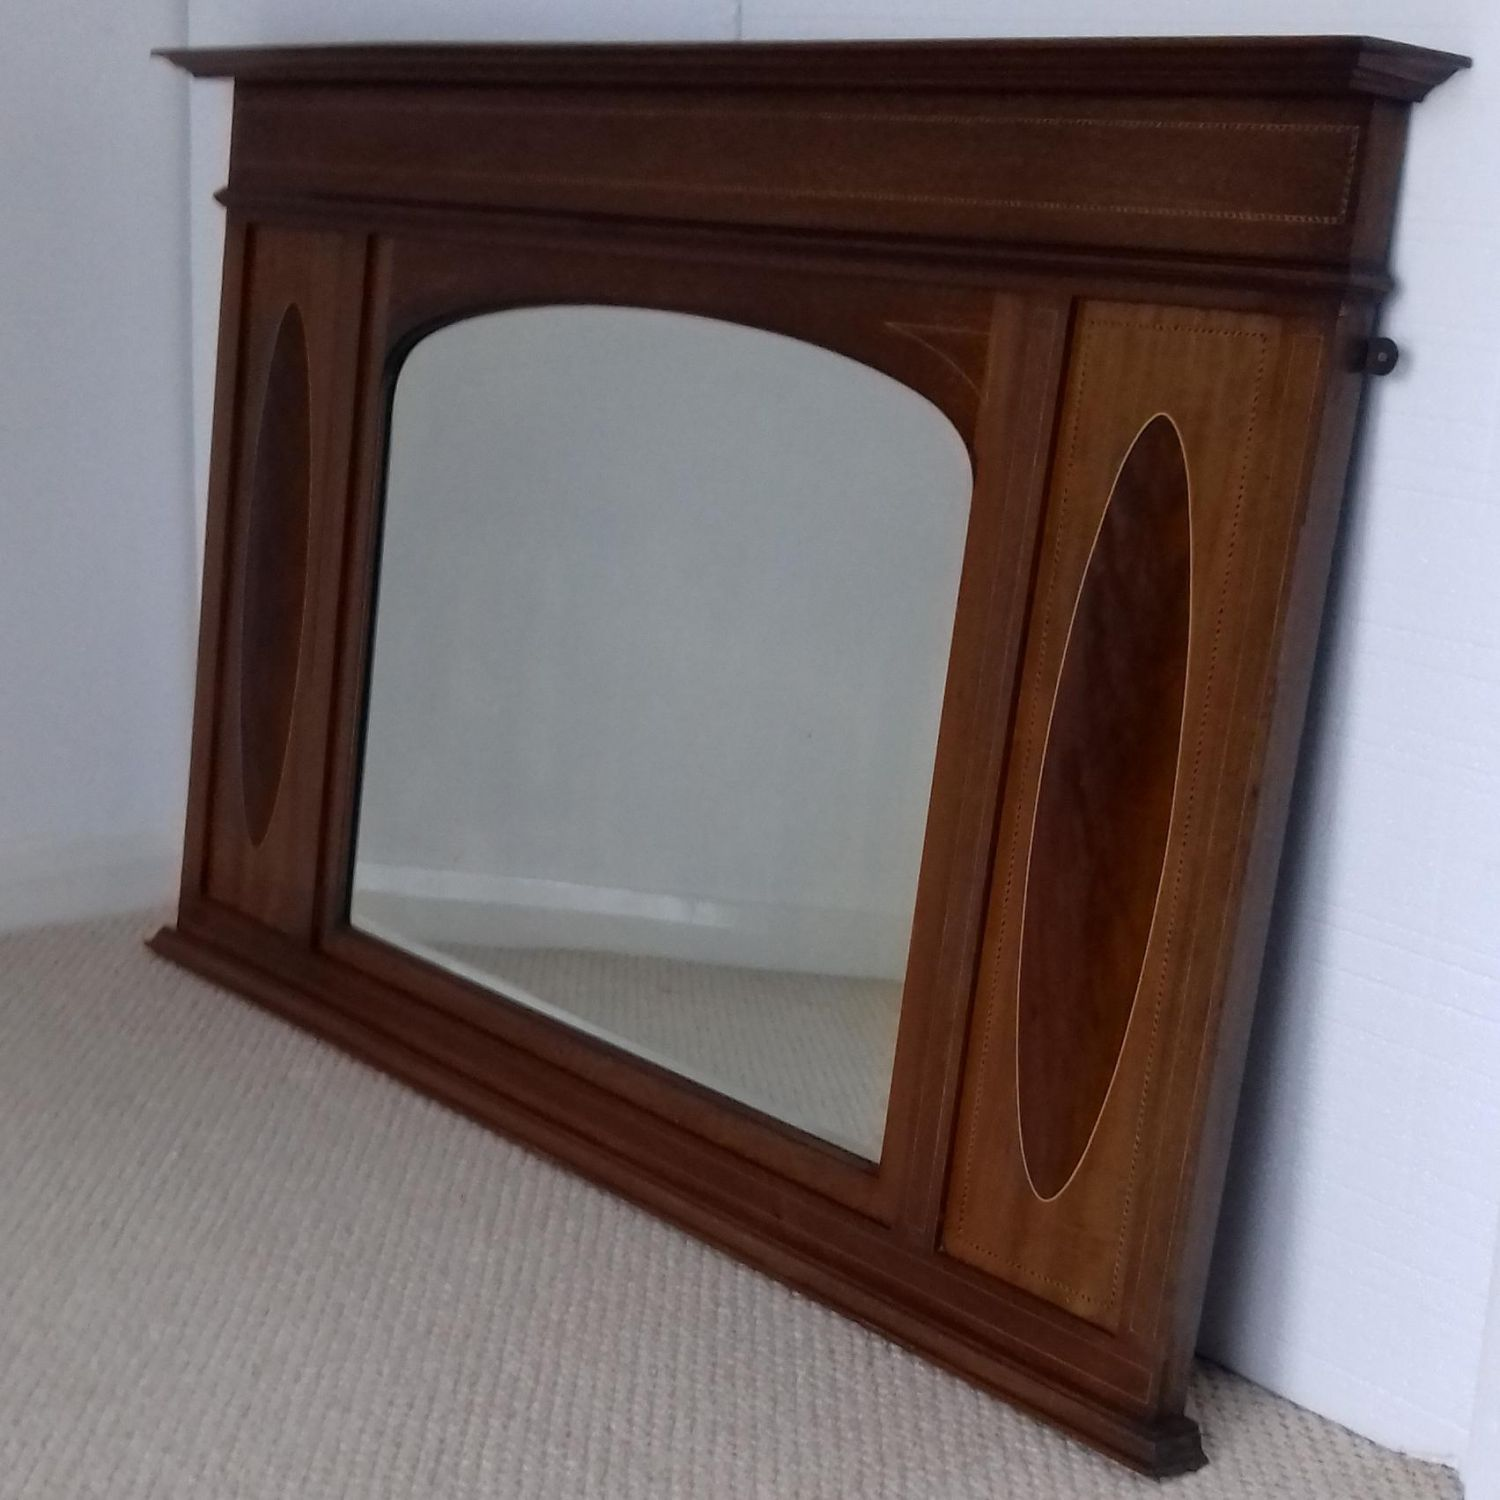 Edwardian Mahogany Inlaid Over Mantel Mirror Antique Mirrors Hemswell Antique Centres